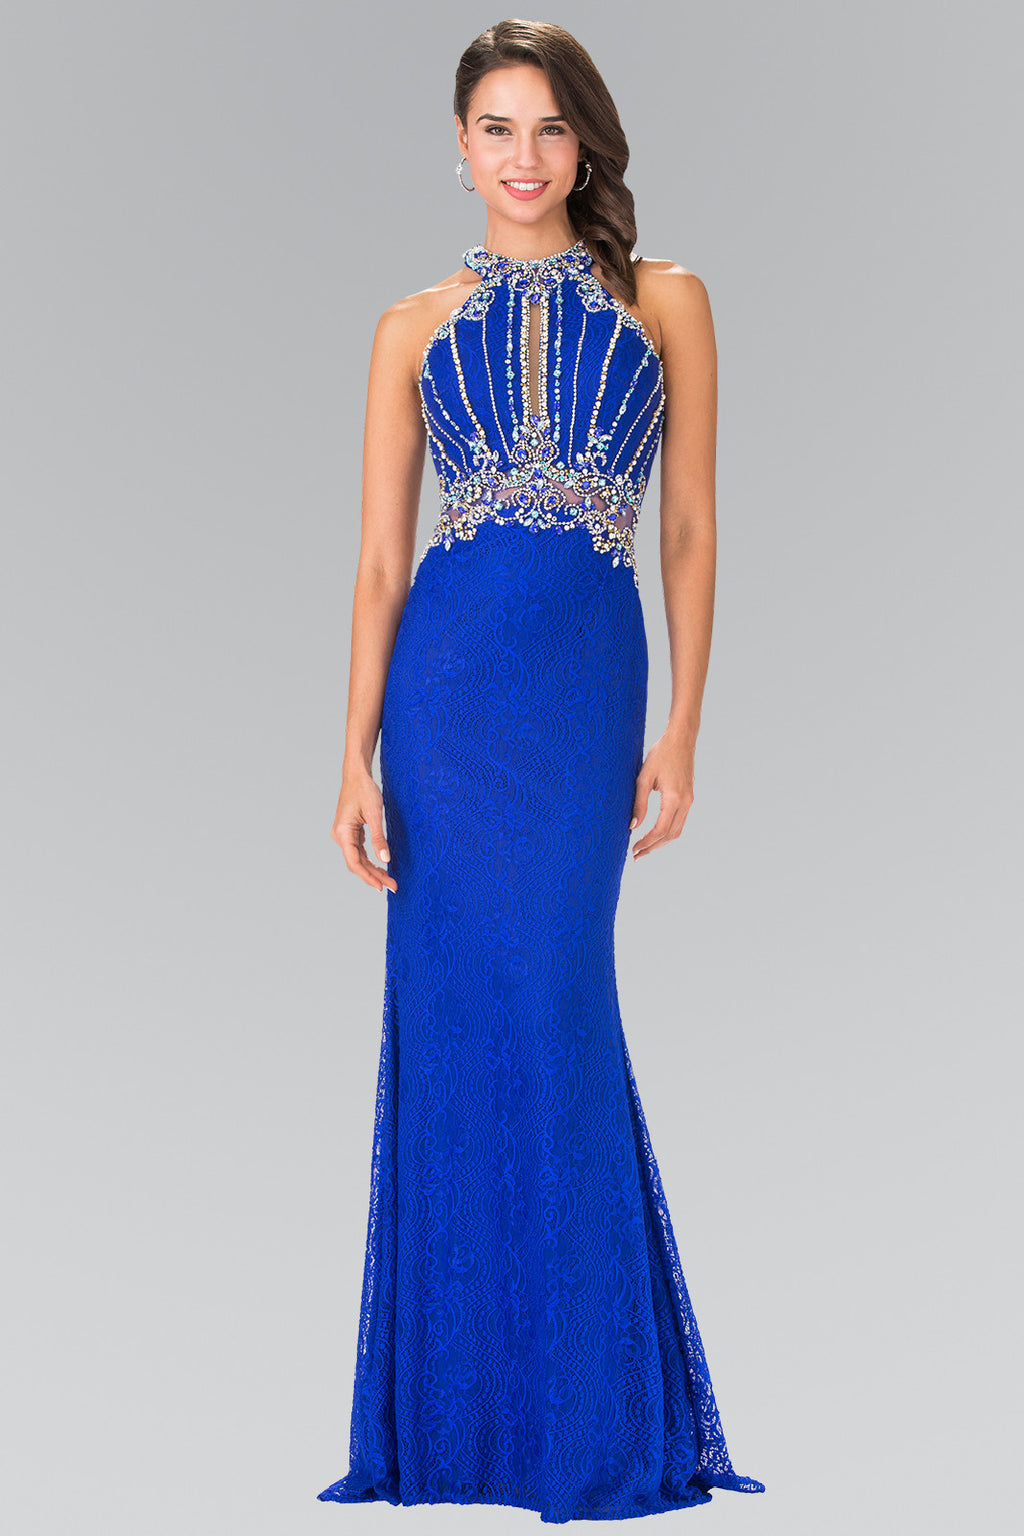 Sparkling beaded fitted lace pageant dress gl2275 Prom dress - Simply Fab Dress